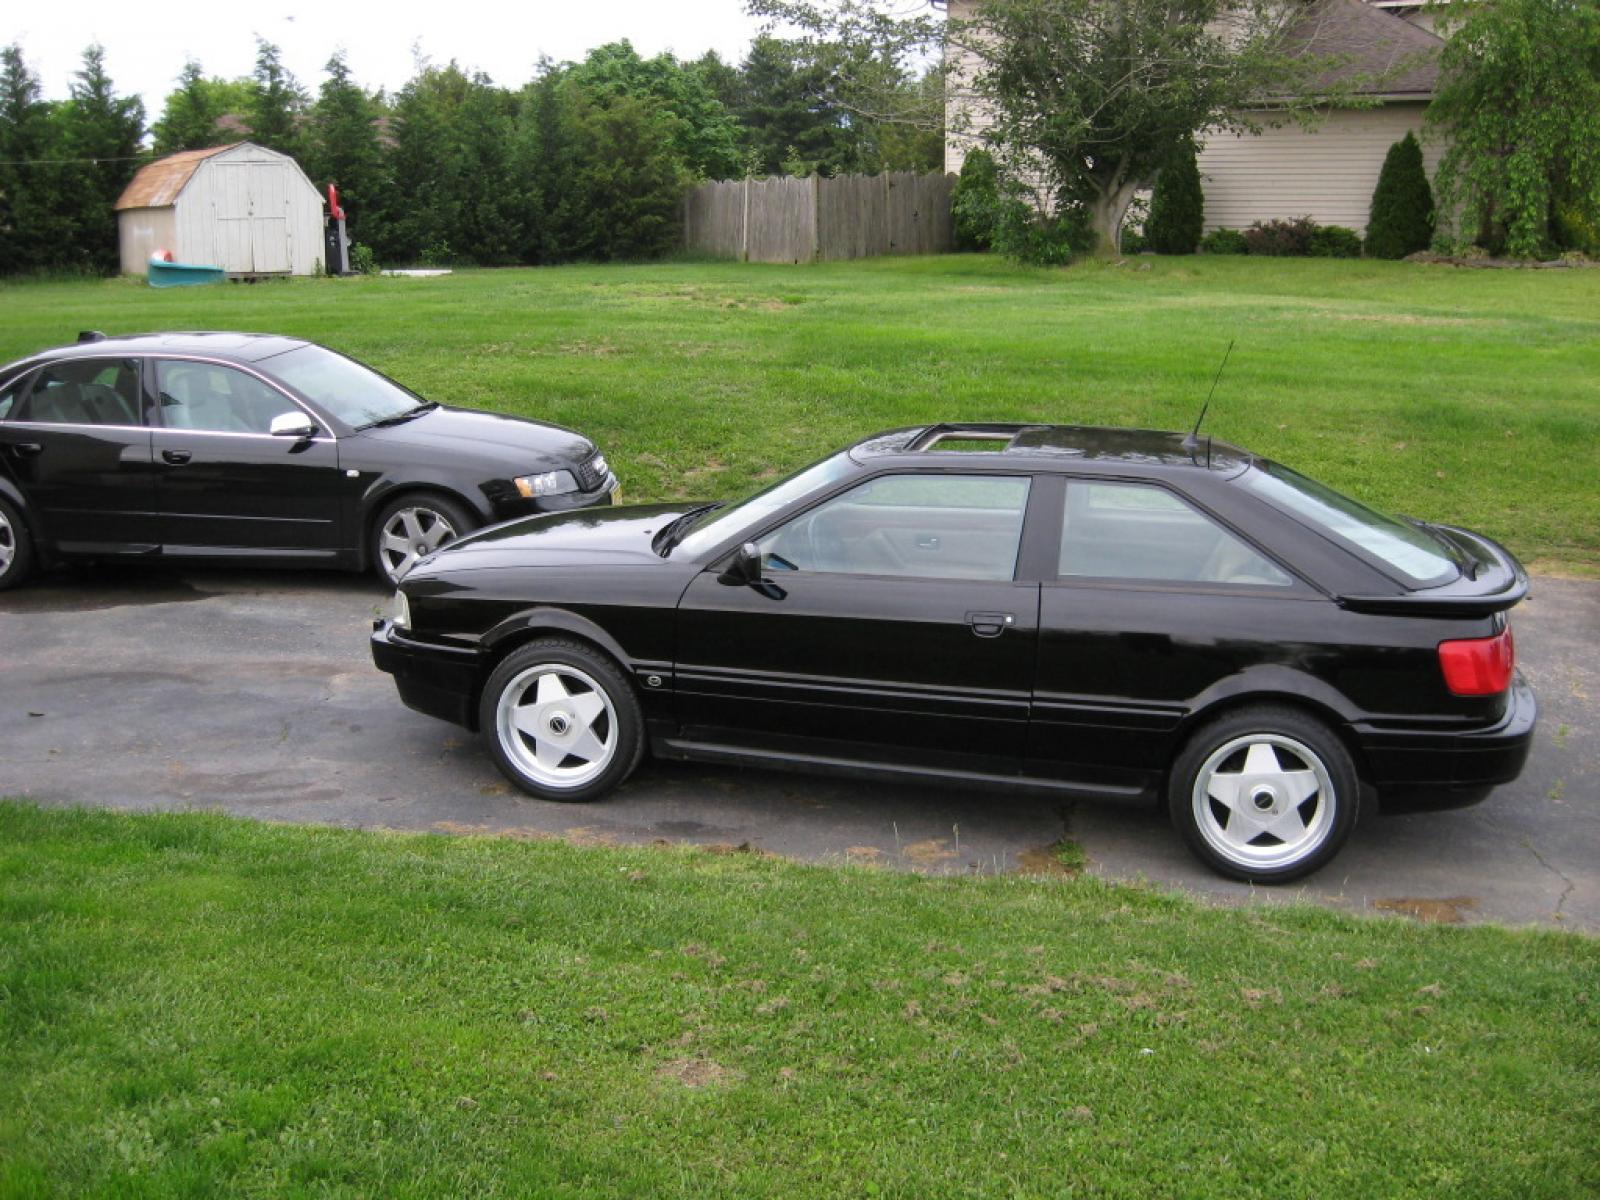 1991 Audi Coupe - Information and photos - ZombieDrive  Audi S Coupe on audi quattro coupe, audi 90 coupe, audi rs2 coupe, audi a5 coupe,